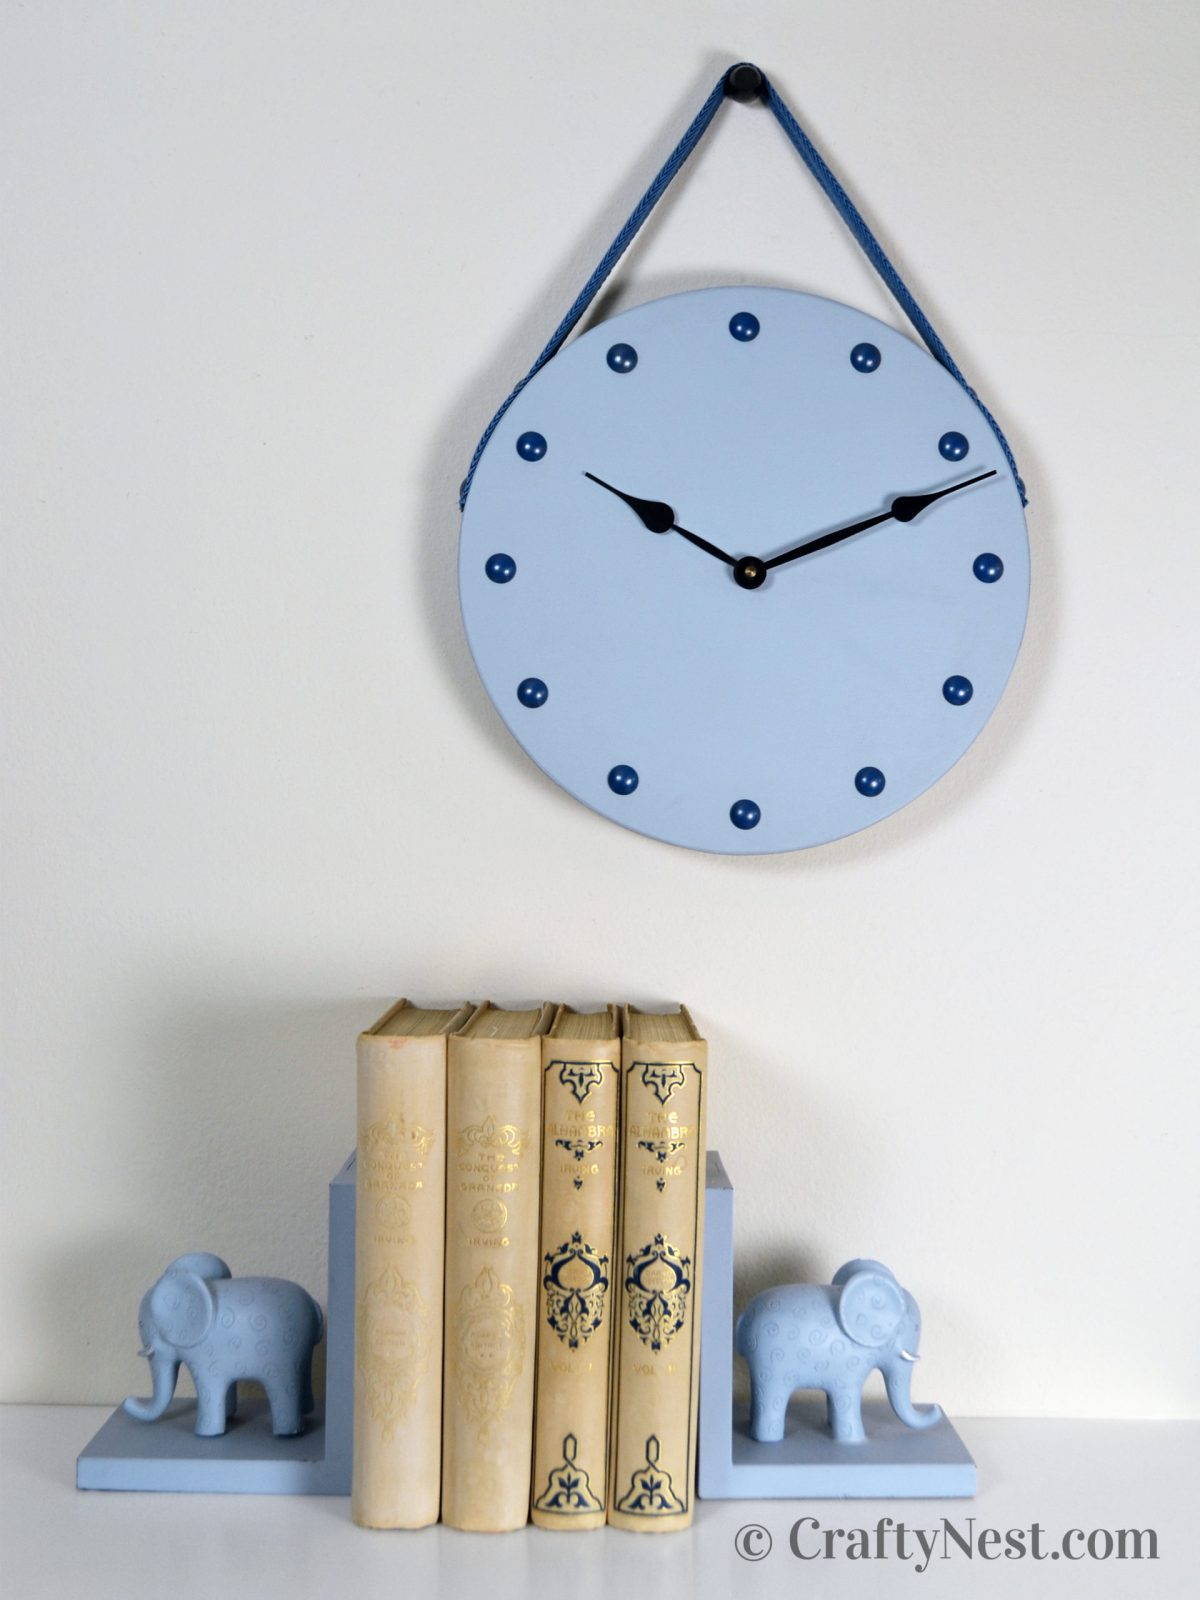 Furniture-nail clock with strap, photo